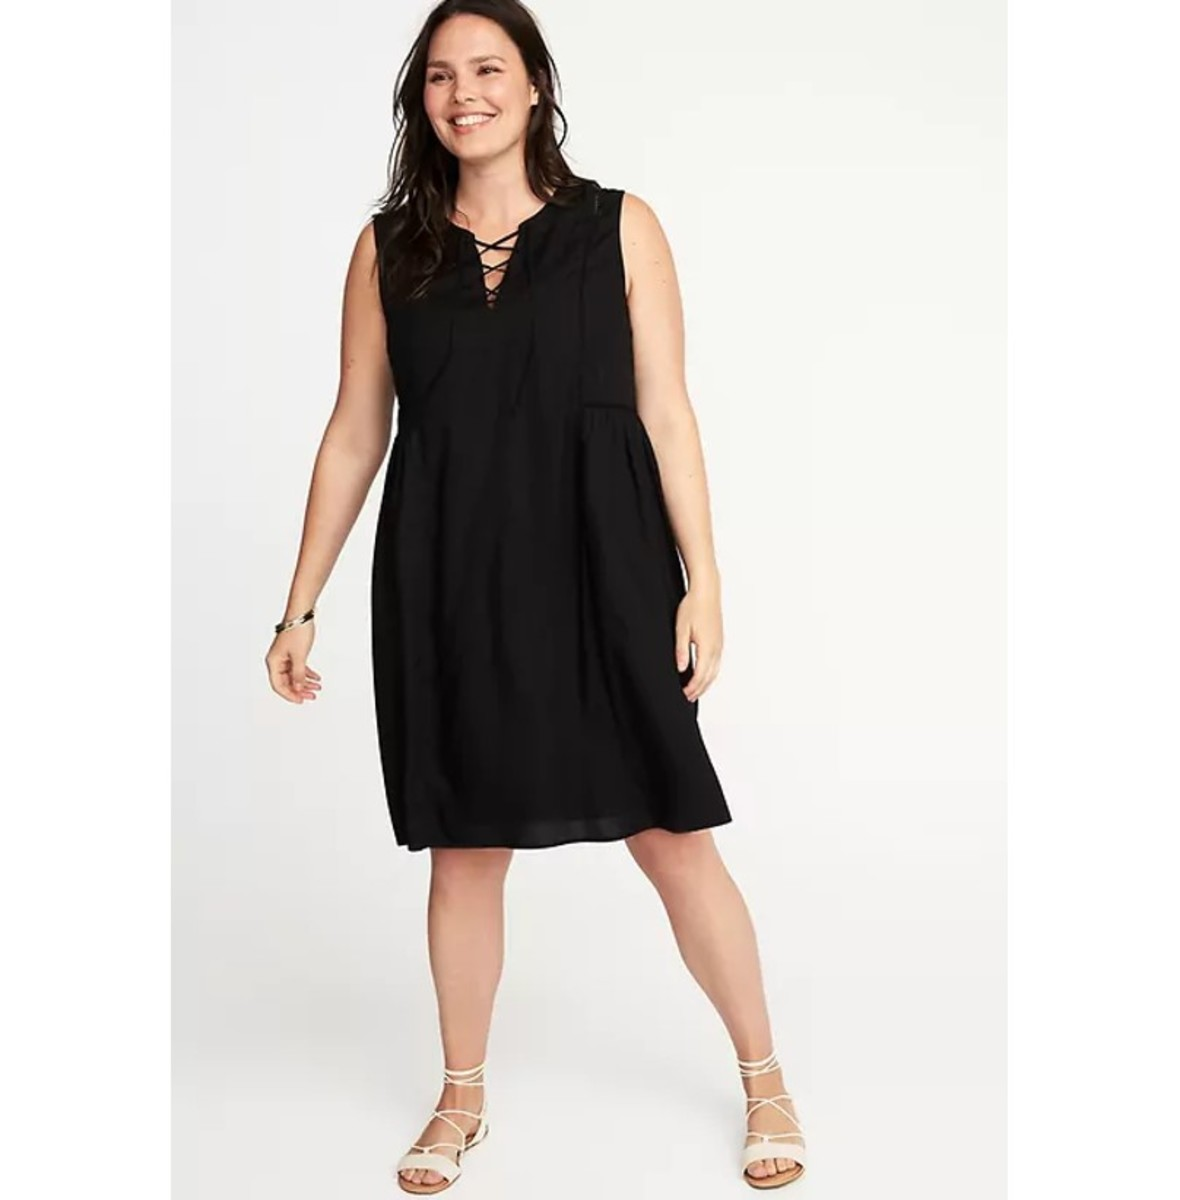 swing dress with rounded split neckline, lace up styling and eyelet trim at front yoke, seamed  shirred back waist